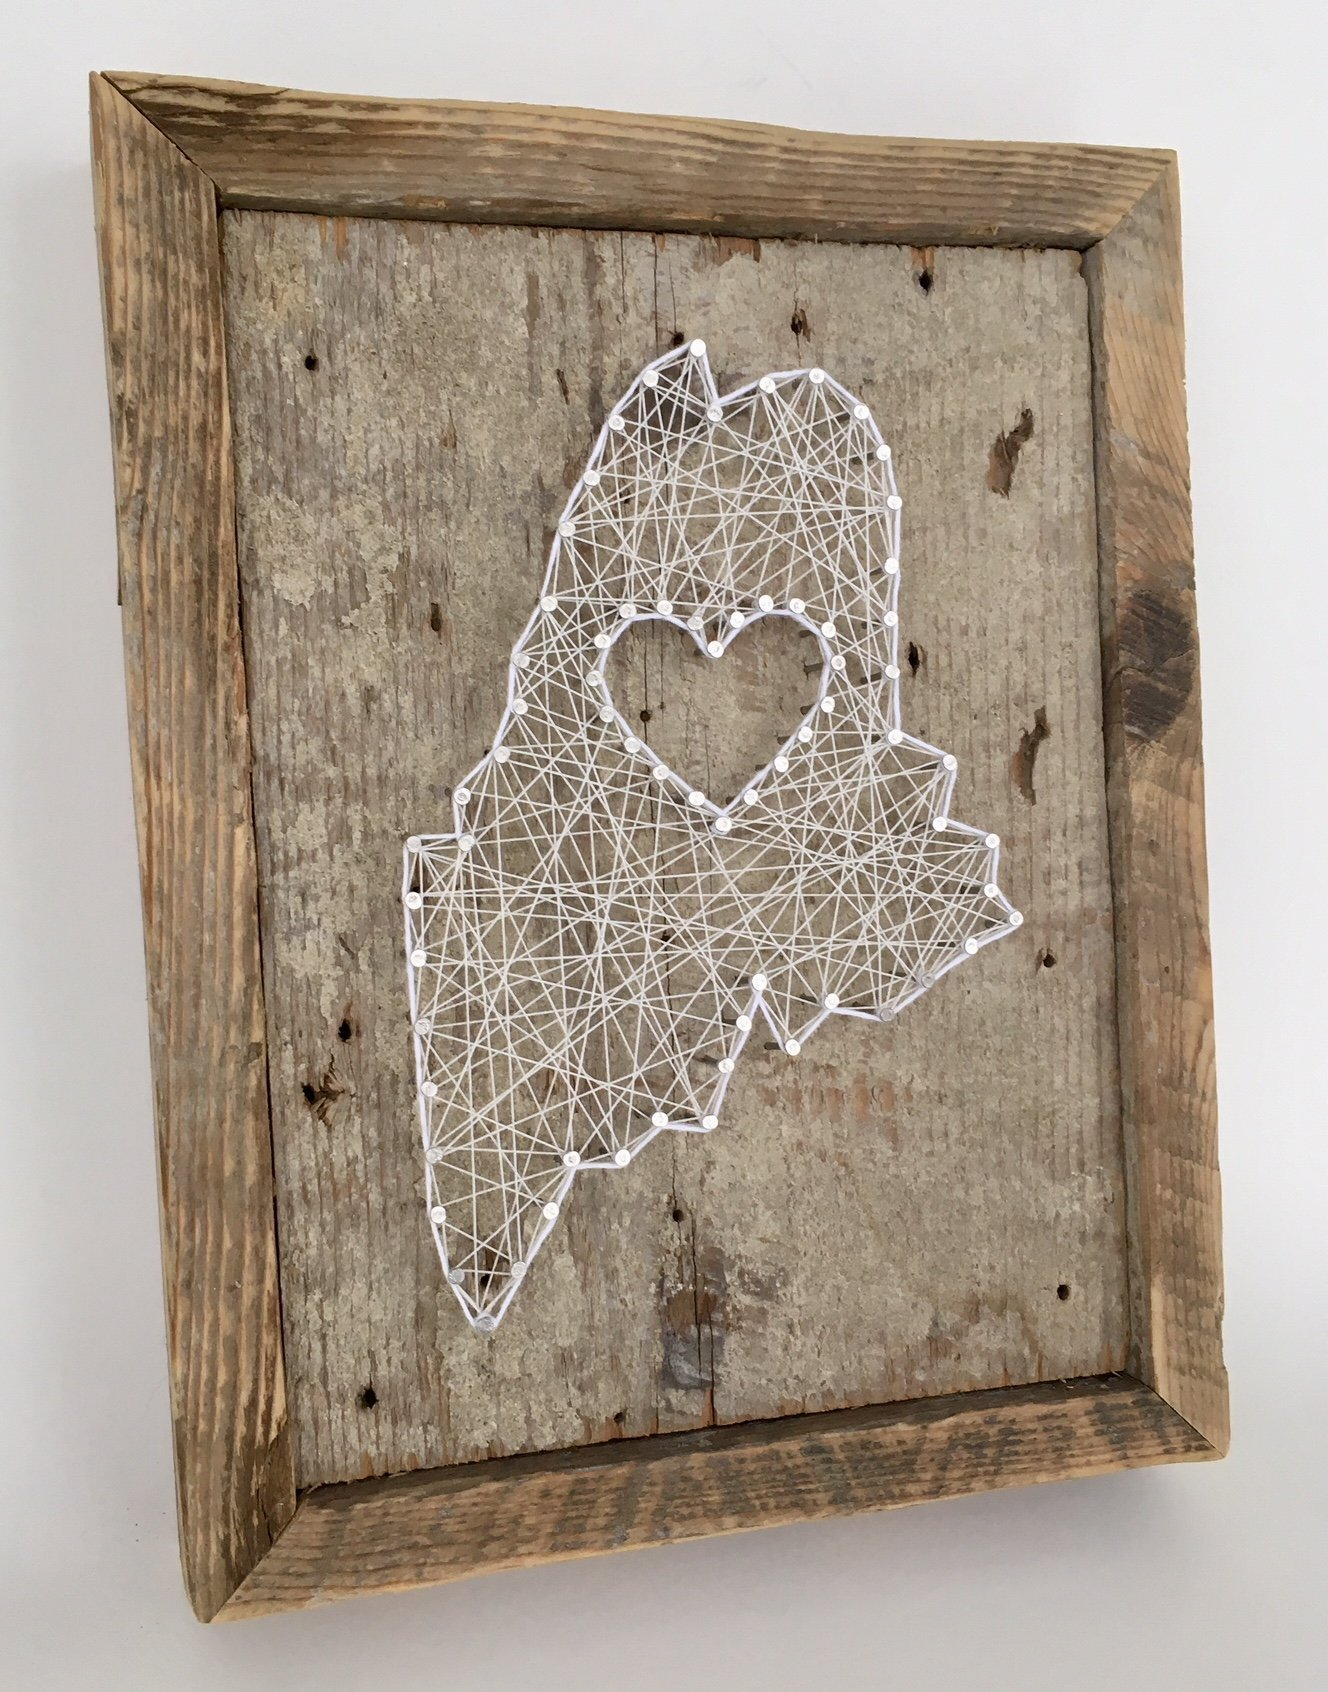 Framed Maine love reclaimed wooden string art sign- A unique Mother's Day, Wedding, Anniversary, Birthday, Valentine's Day, Christmas and housewarming gift.